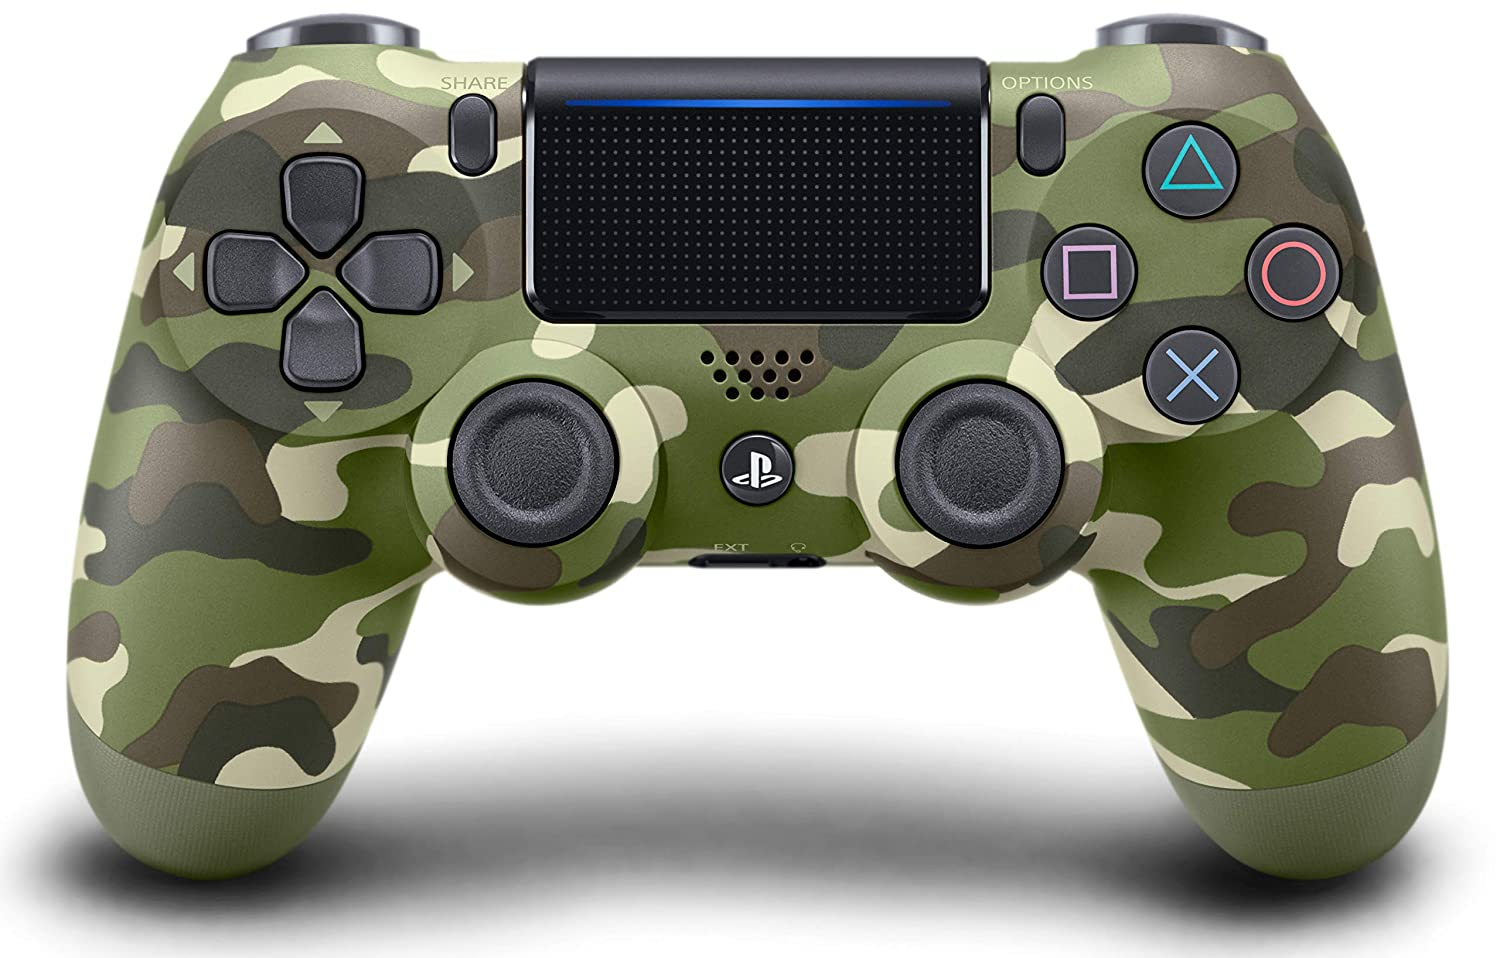 DualShock 4 Wireless Controller for PlayStation 4 -Green Camouflage